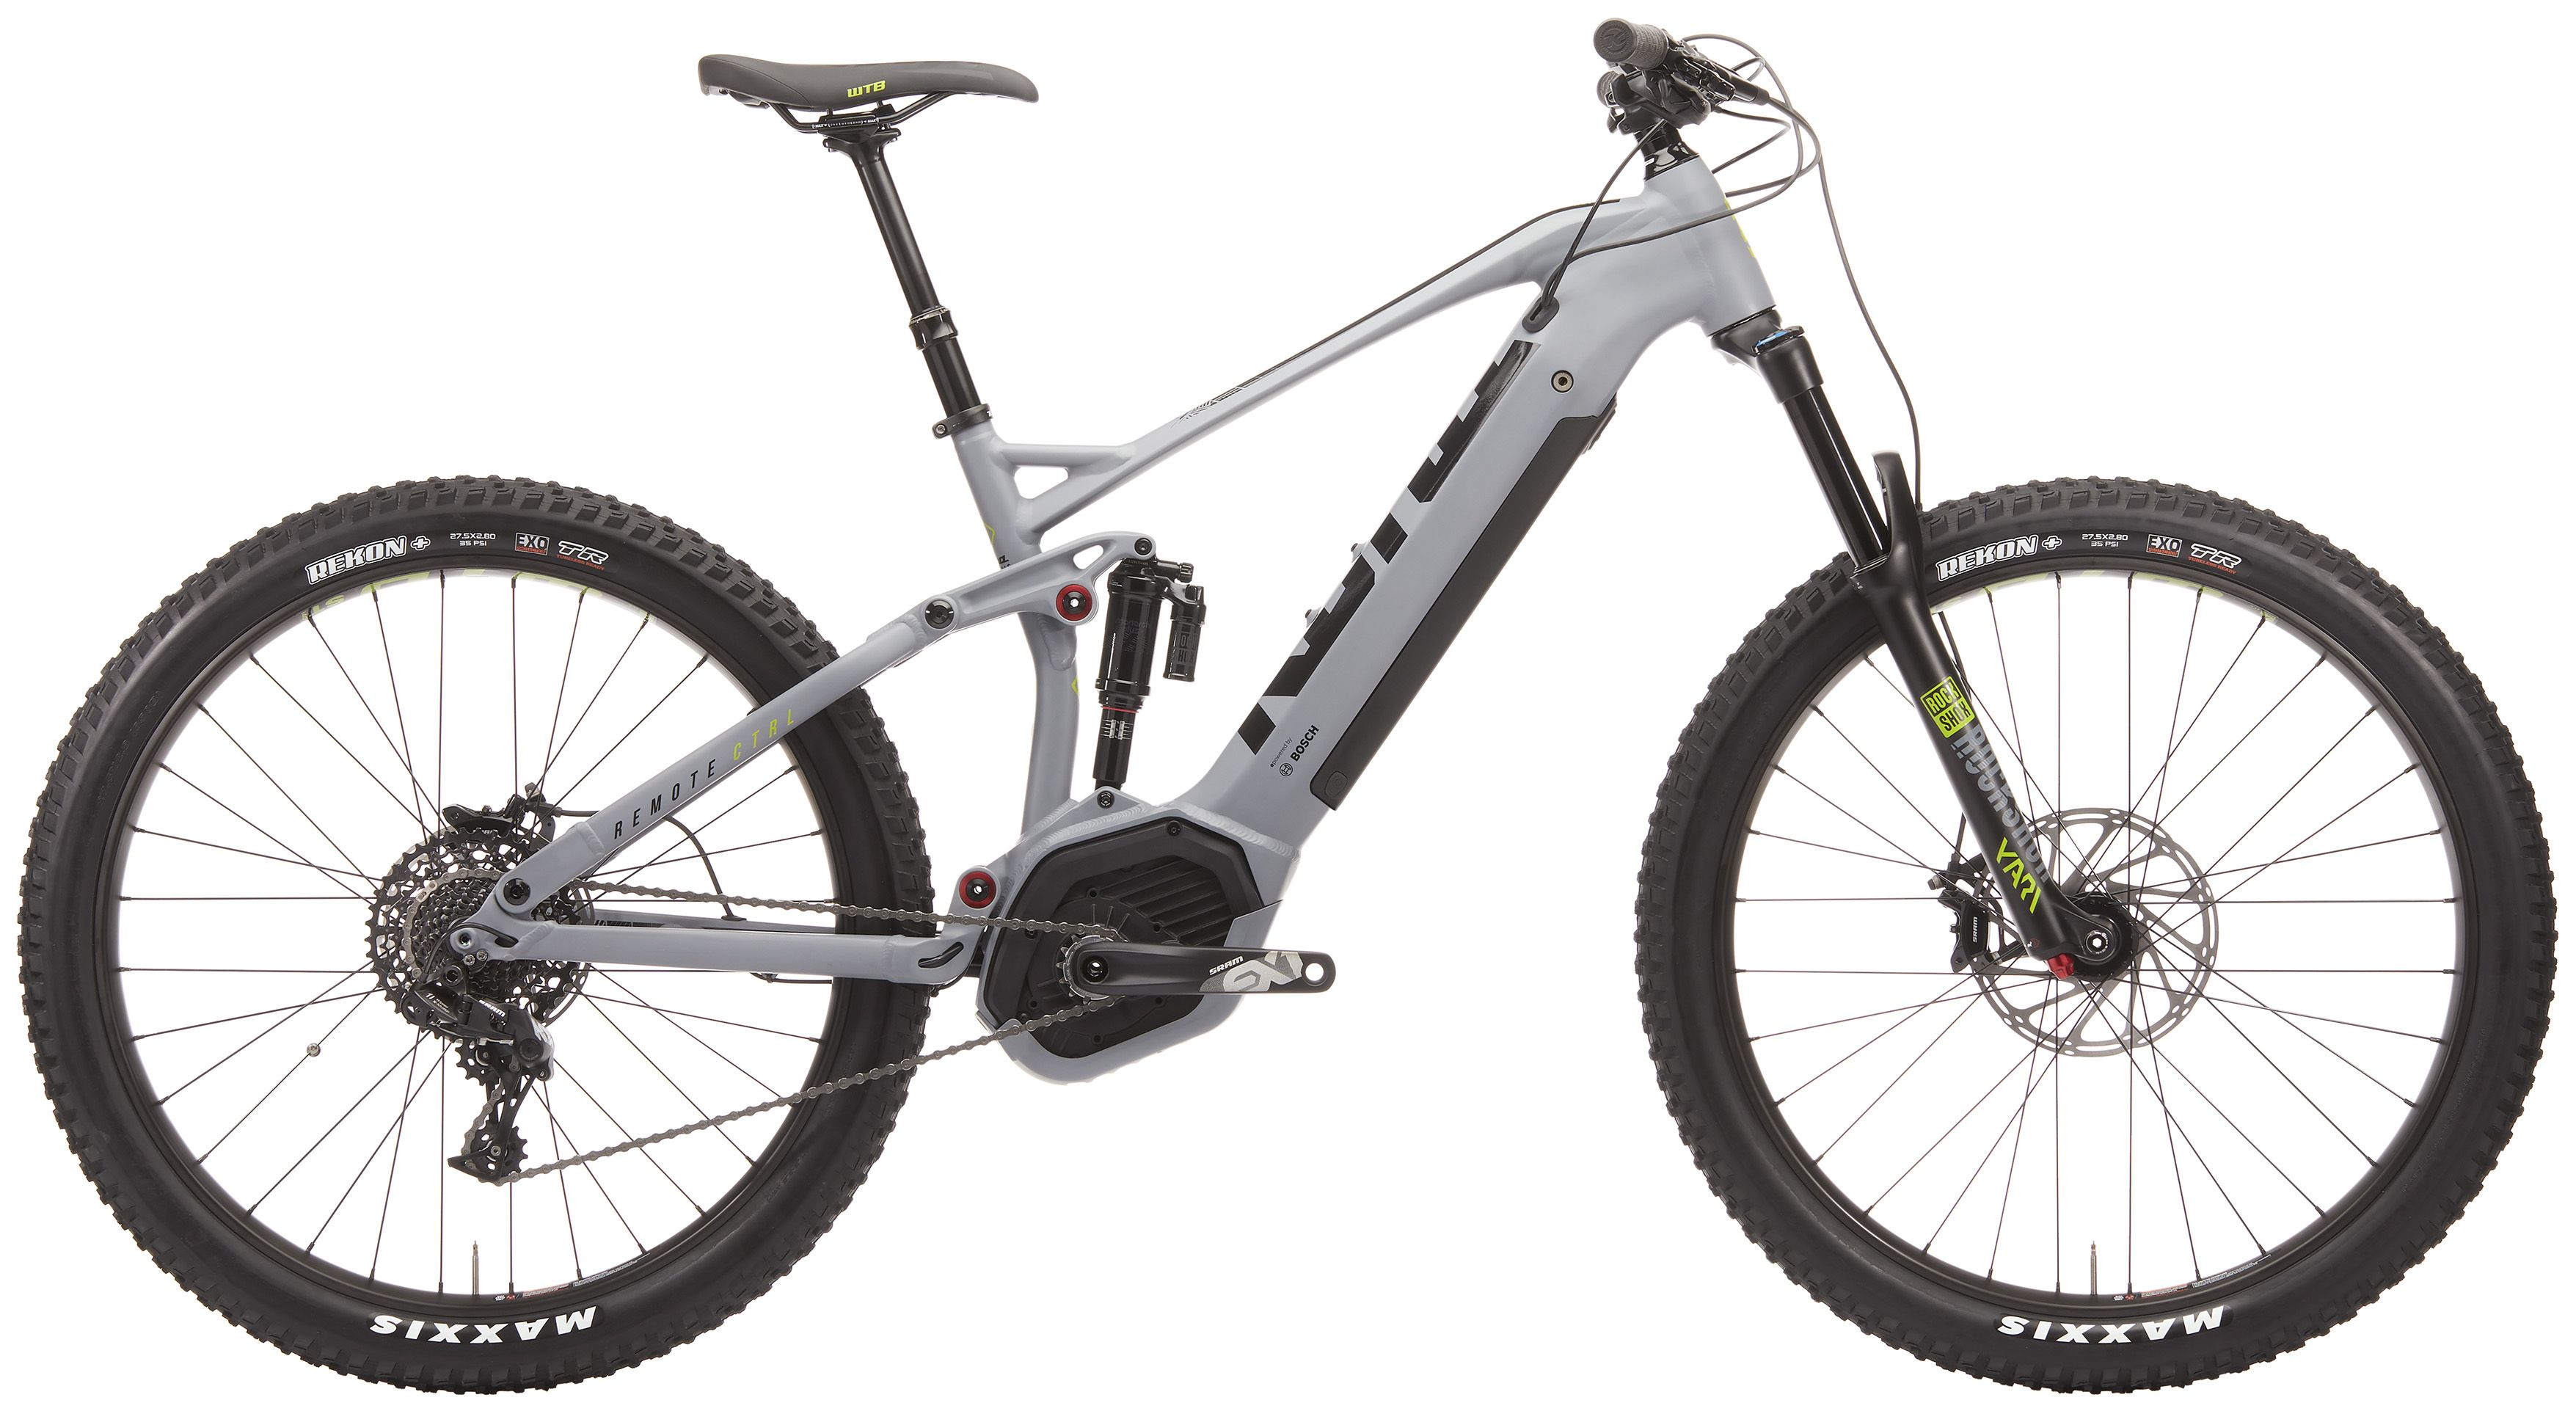 Kona Remote Ctrl Electric Mountain Bike 2020 | City-cykler